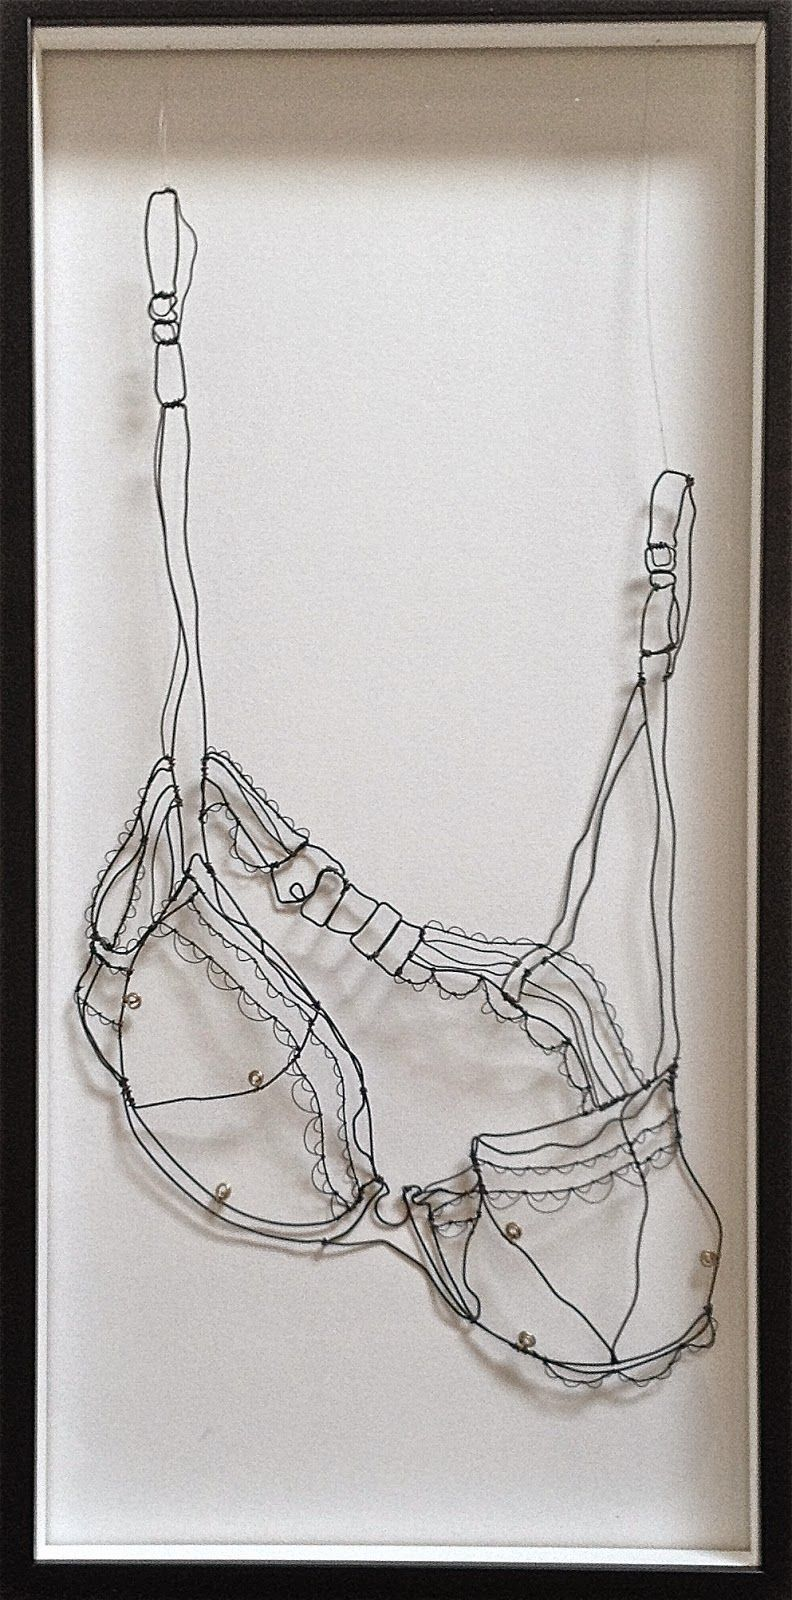 sculptural drawing by christina james nielsen